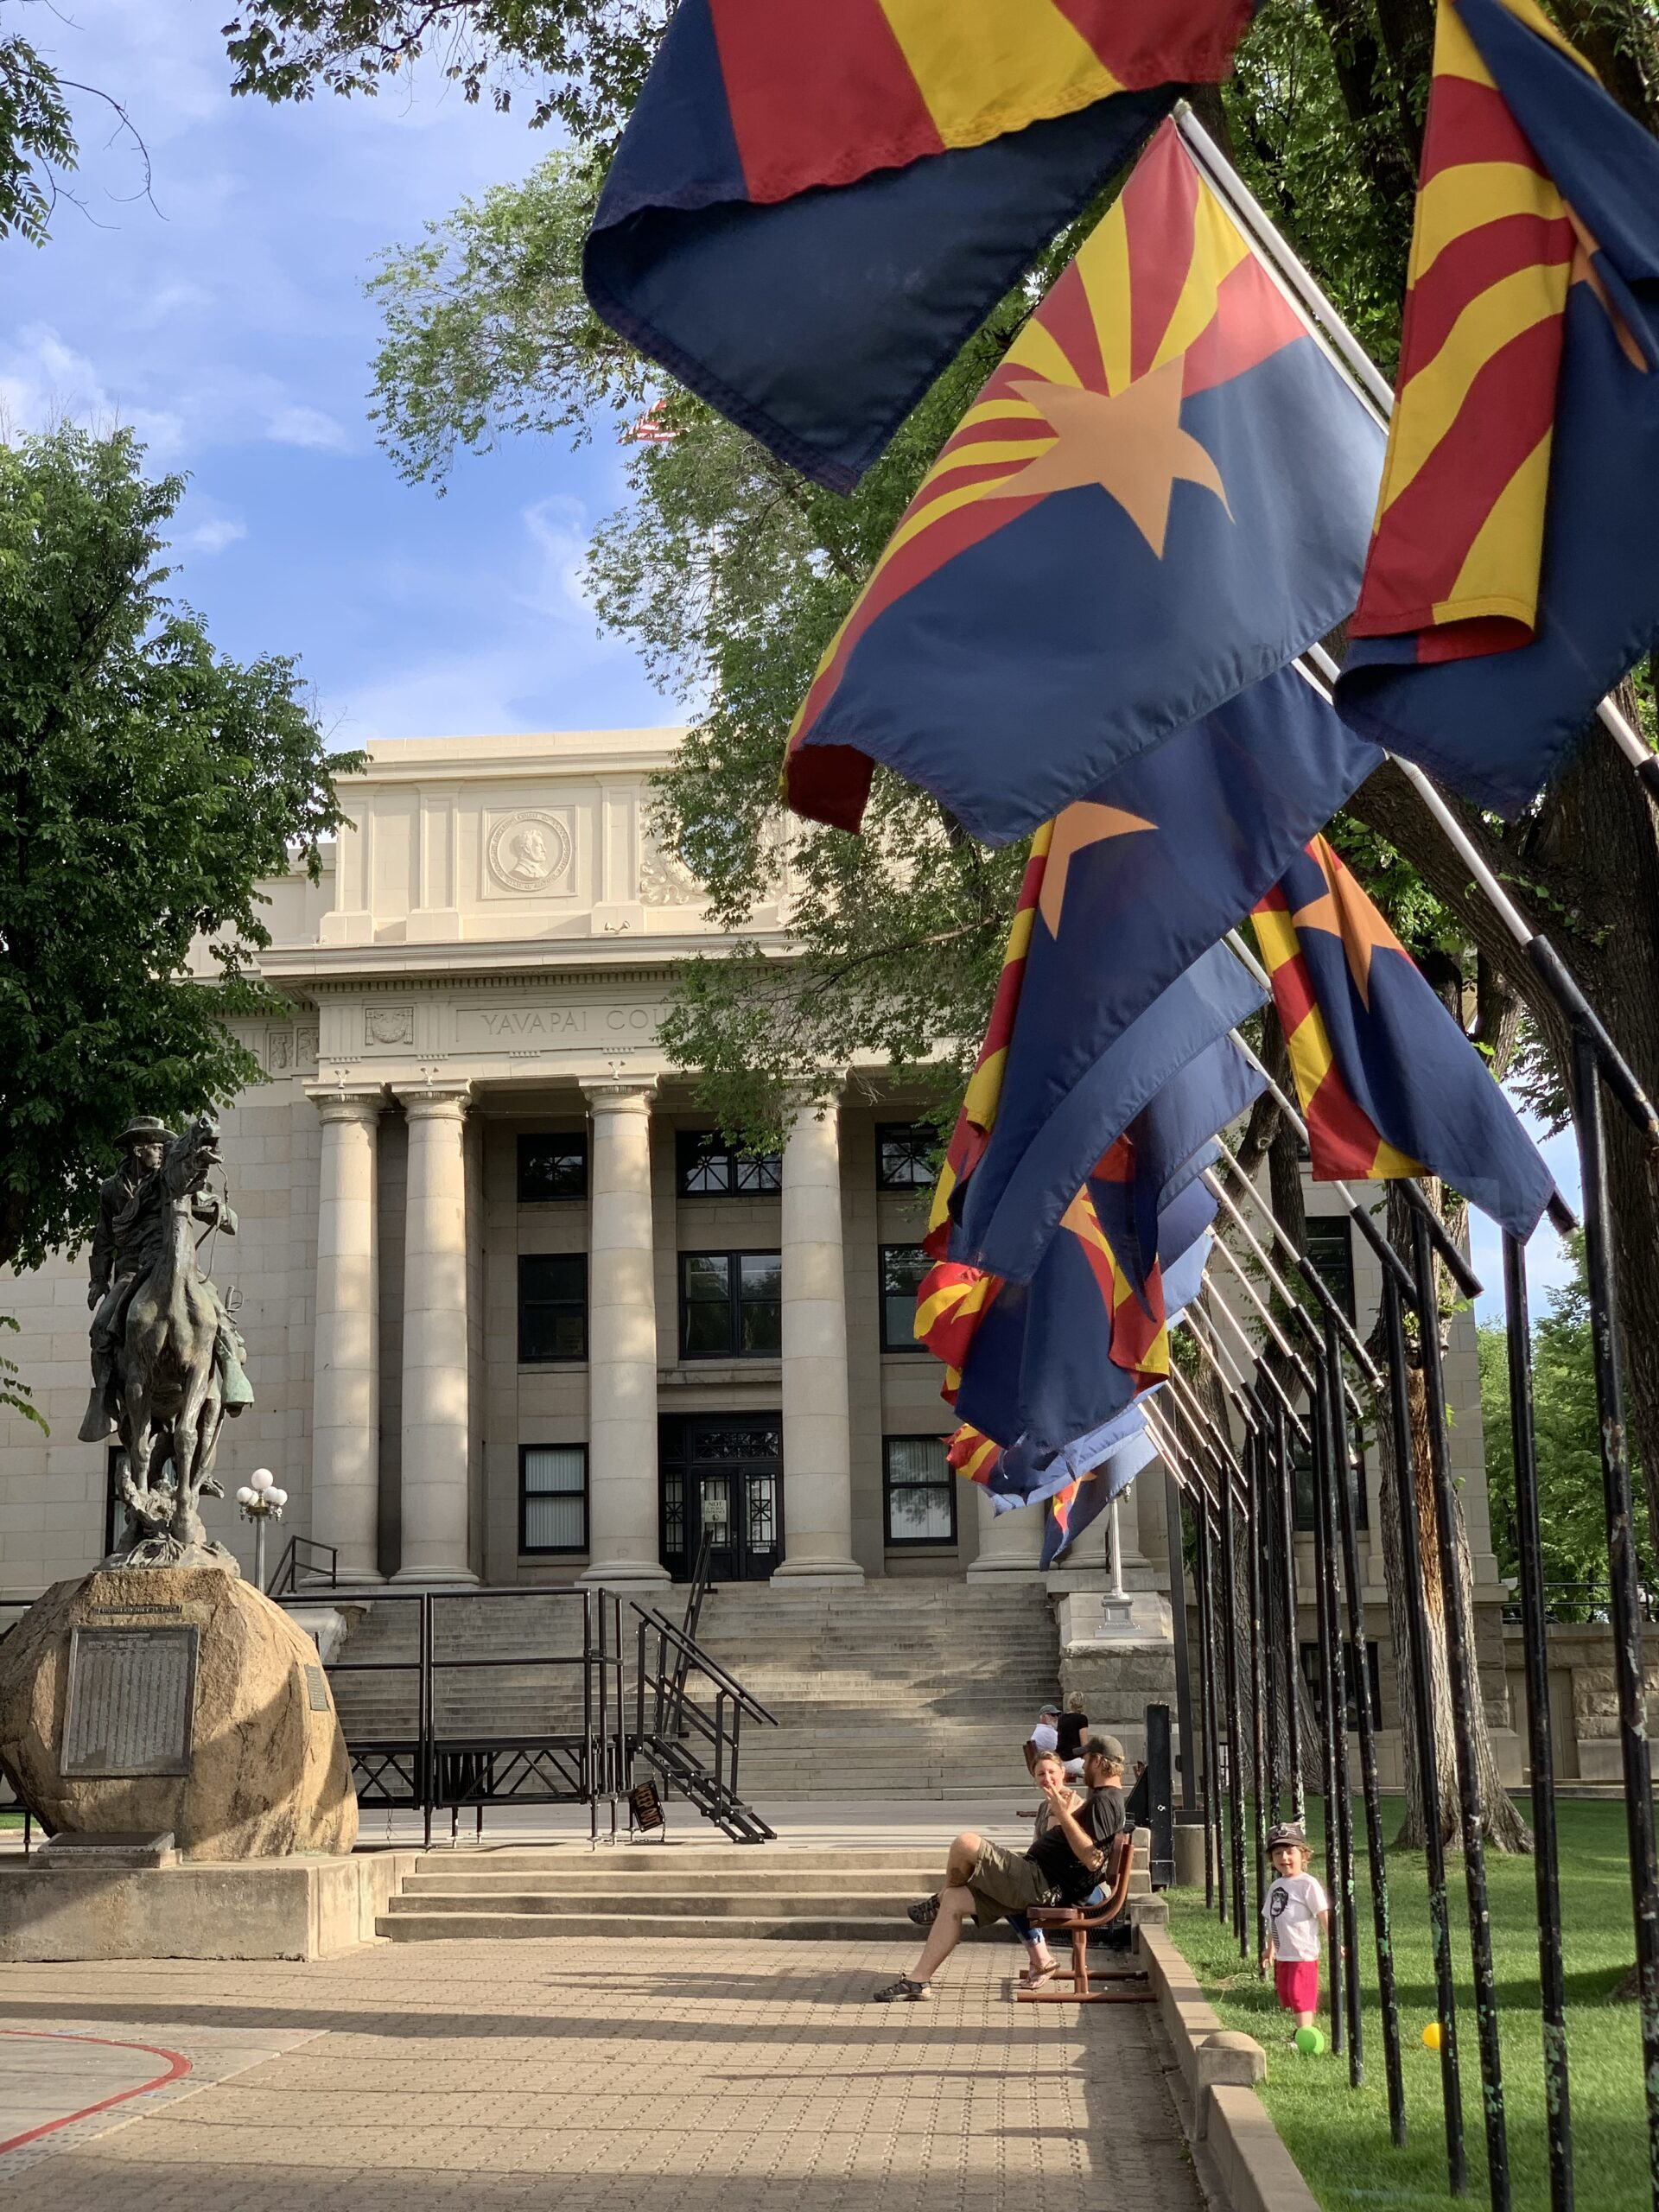 Things to do in Prescott AZ - Front of Courthouse at Courthouse Square with flags and statue